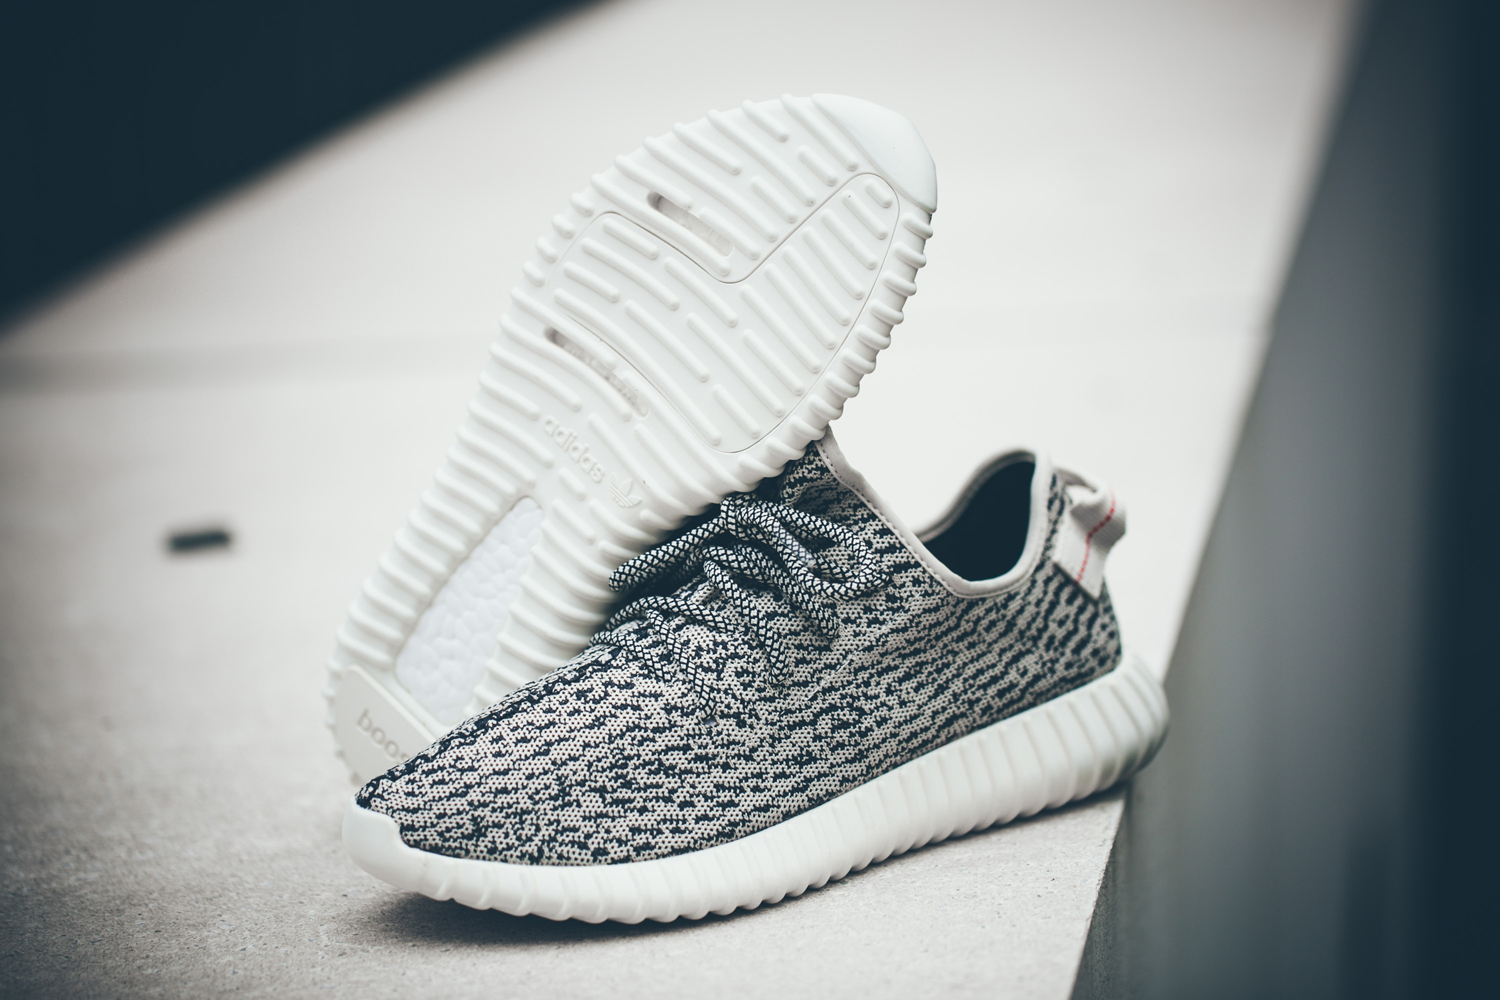 Adidas Yeezy 550 Boost 'SPLY 350' On Feet !!